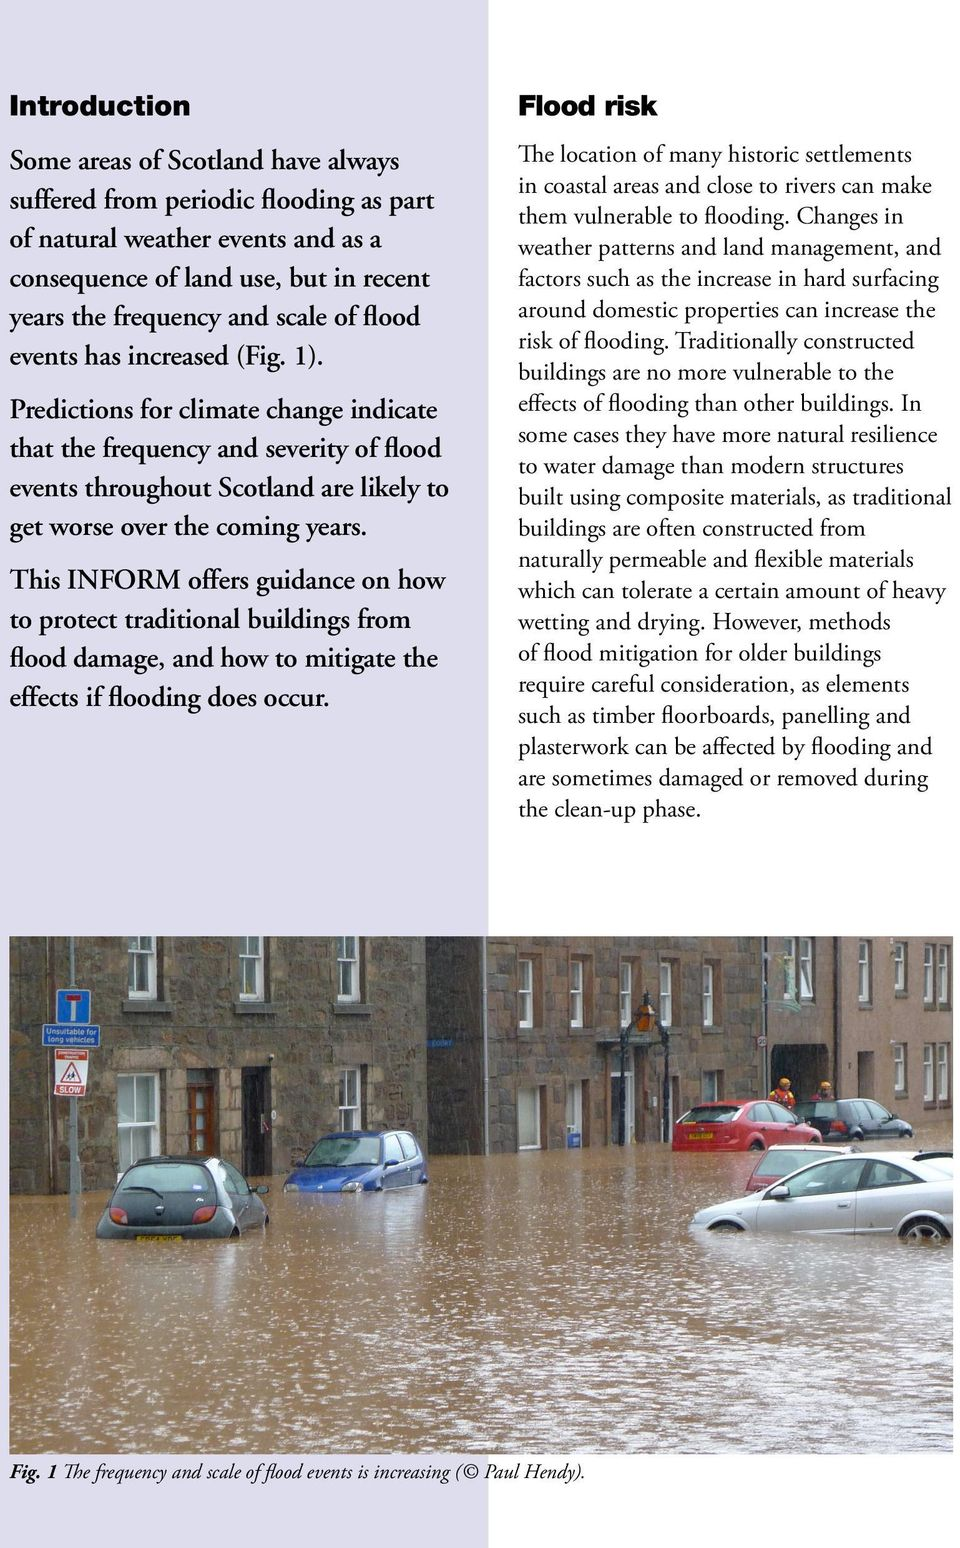 This INFORM offers guidance on how to protect traditional buildings from flood damage, and how to mitigate the effects if flooding does occur.